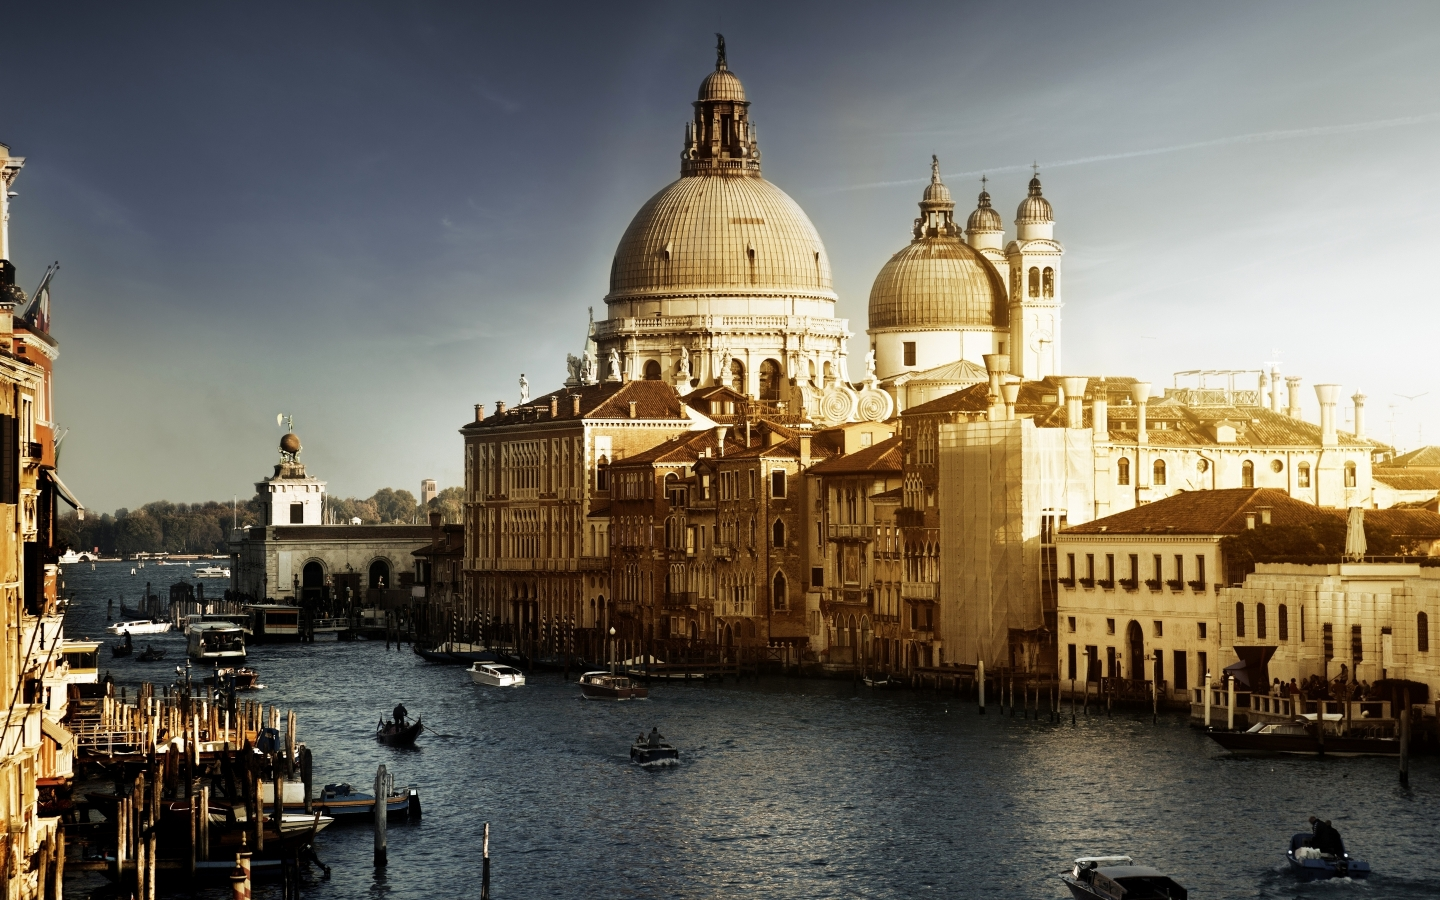 Lovely Venice City Corner for 1440 x 900 widescreen resolution